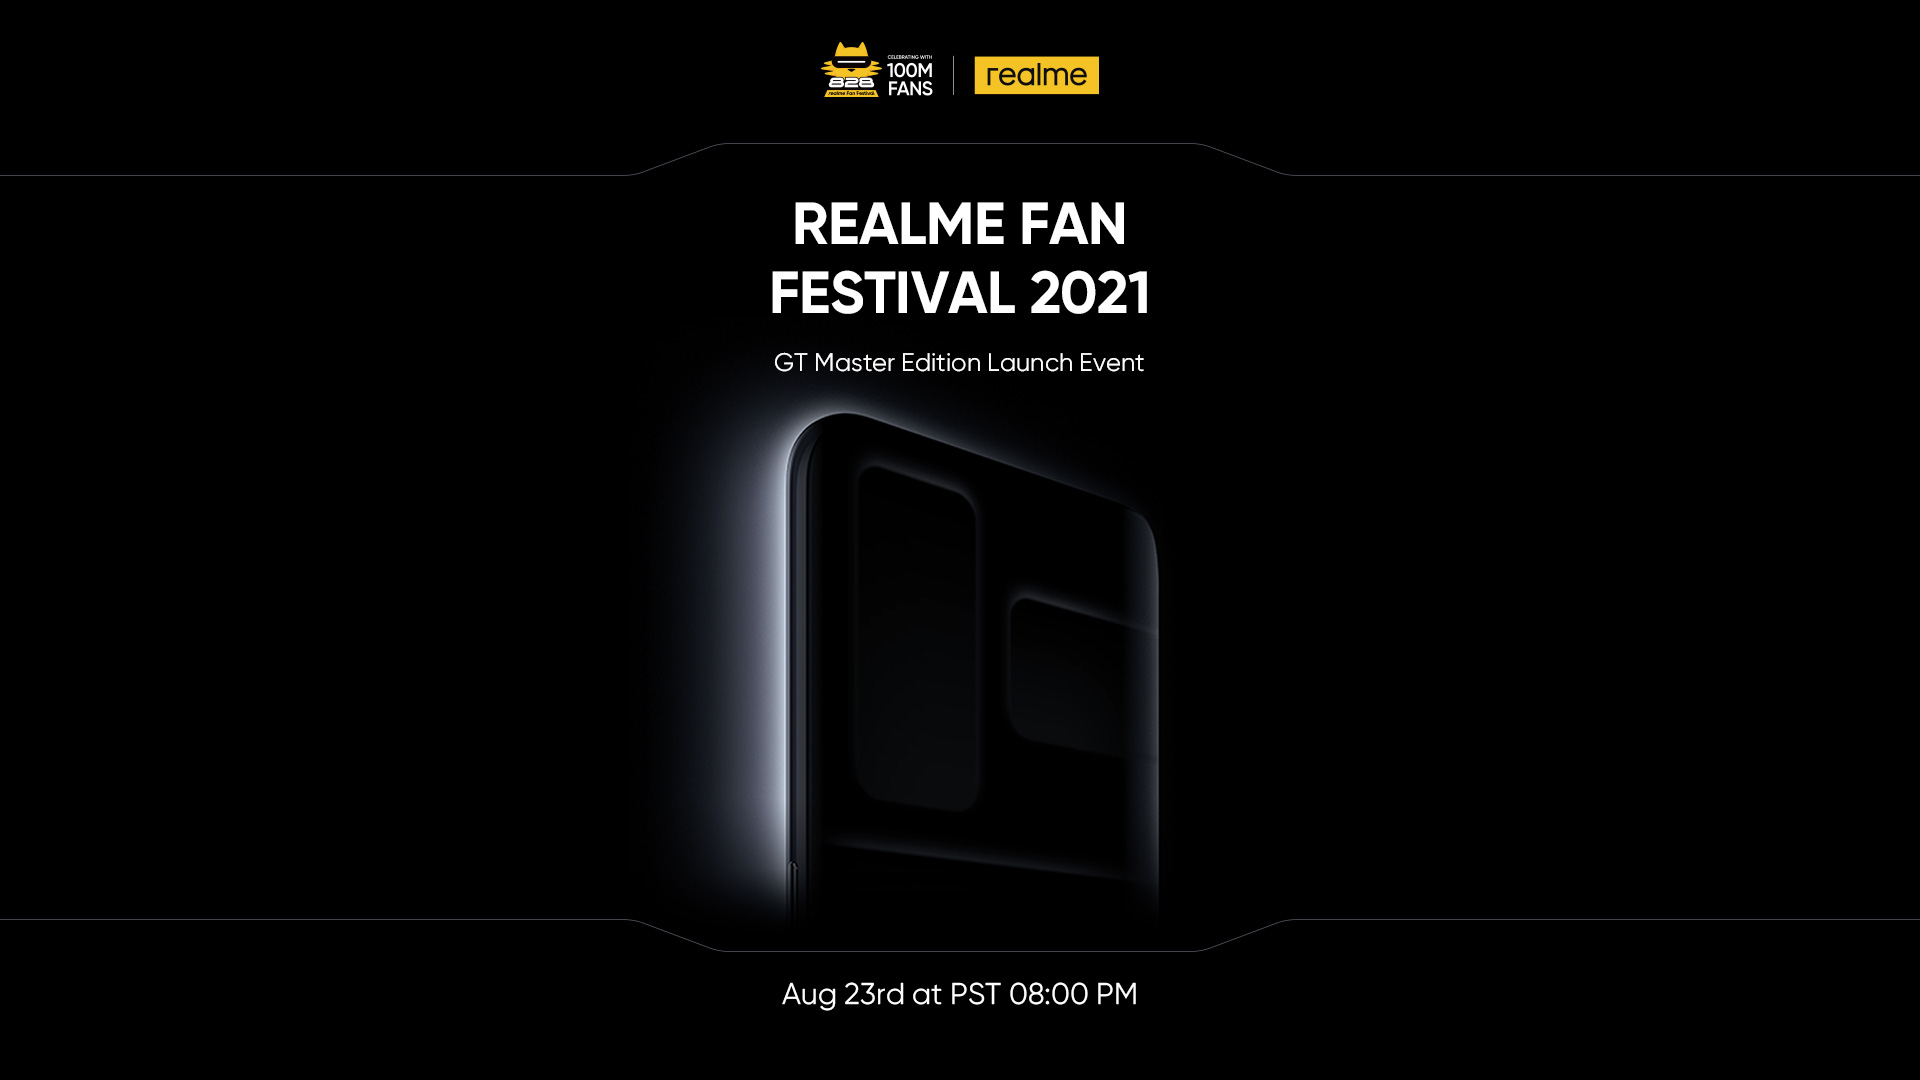 Artwork 1 4 - realme to Launch 100 Million Sales Milestone Product GT Master Edition Series and Other Product Lines on August 23